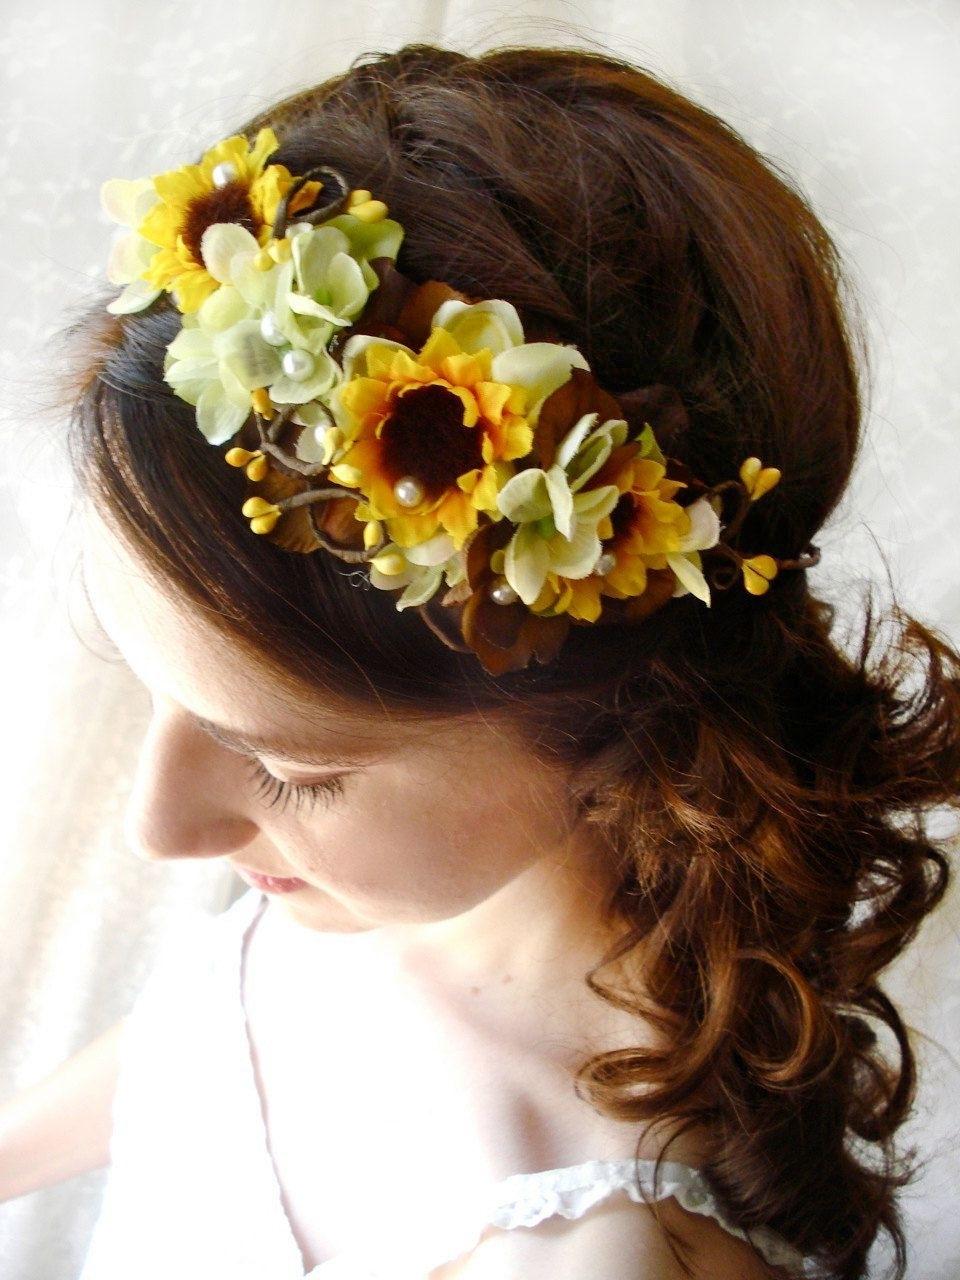 Sunflower Head Wreath, Yellow Flower Accessory, Bridal Hair Piece In Latest Wedding Hairstyles With Sunflowers (View 2 of 15)